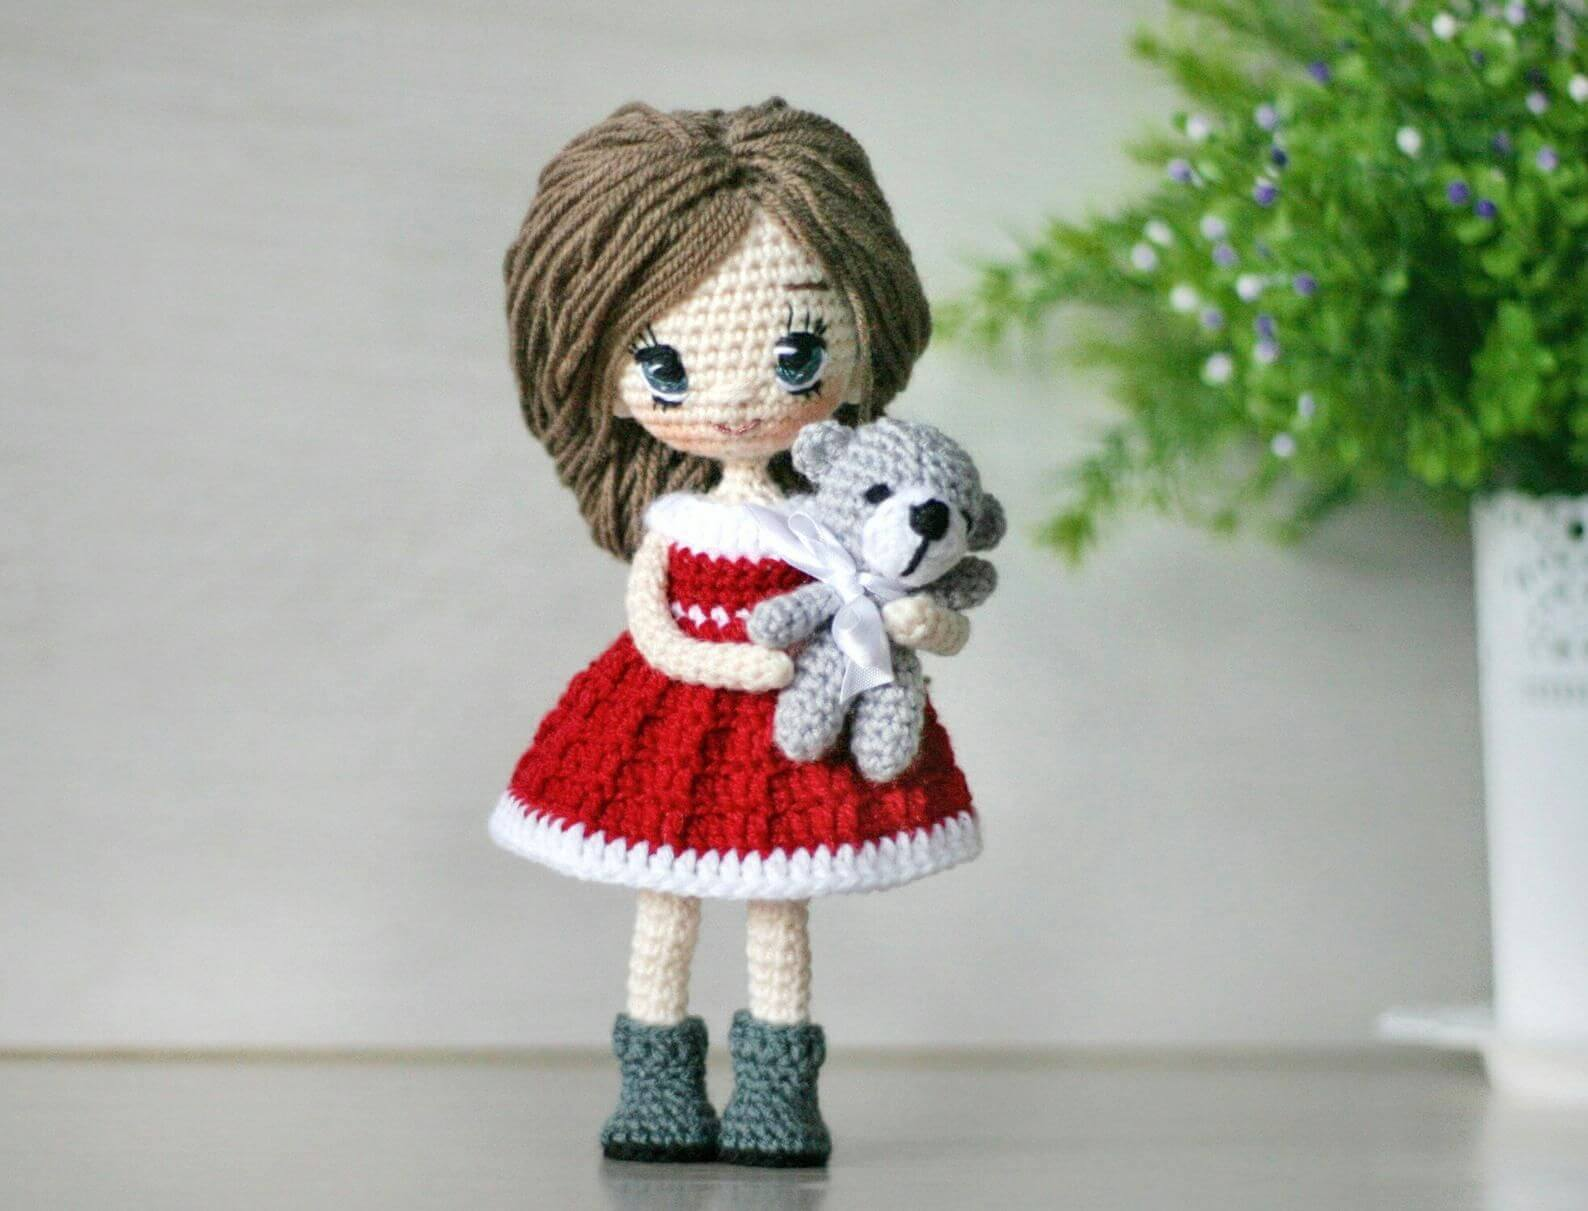 Eyes & Mouth Hand Embroidery for Crochet Amigurumi Doll - YouTube | 1211x1588